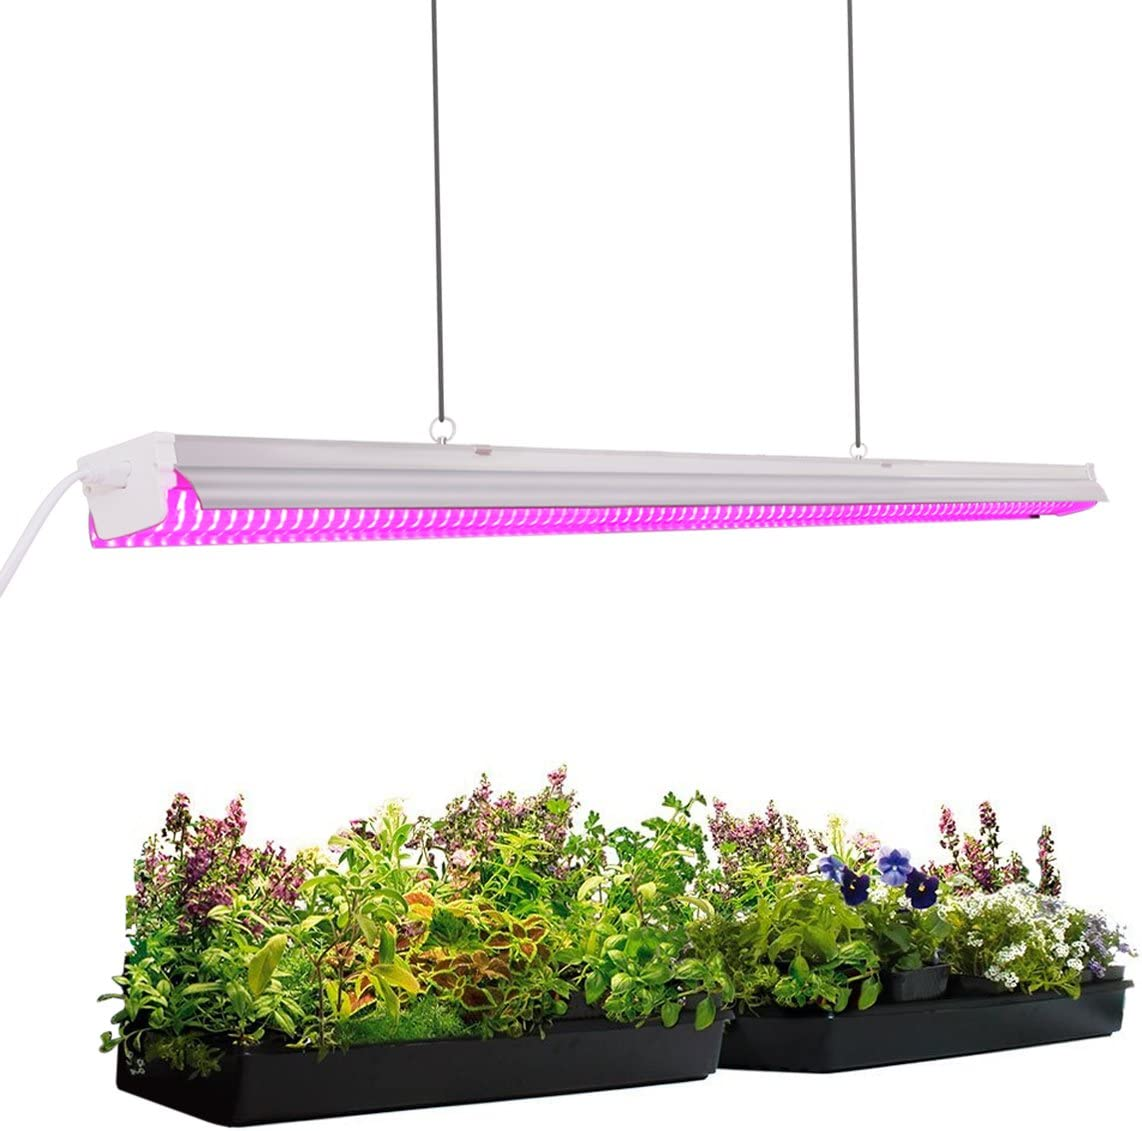 Byingo 4ft 64W Plant Grow Light – LED Integrated Lamp Fixture Plug and Play – Full Spectrum for Indoor Plants Flowers Growing